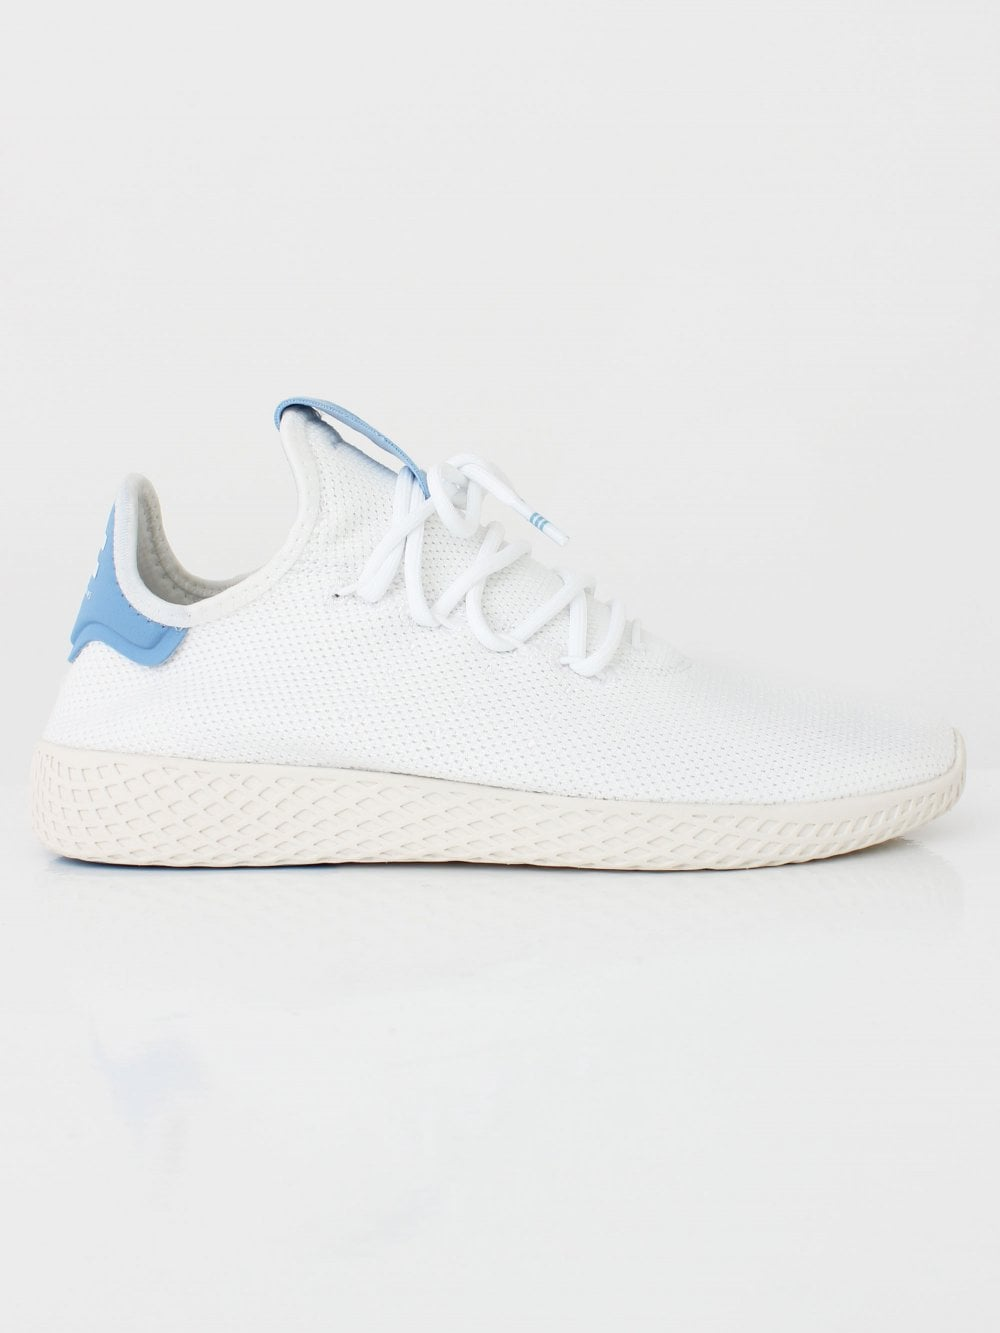 b1b152988ec1b AdidasxPharrell Pharrell Williams Tennis HU in White Blue